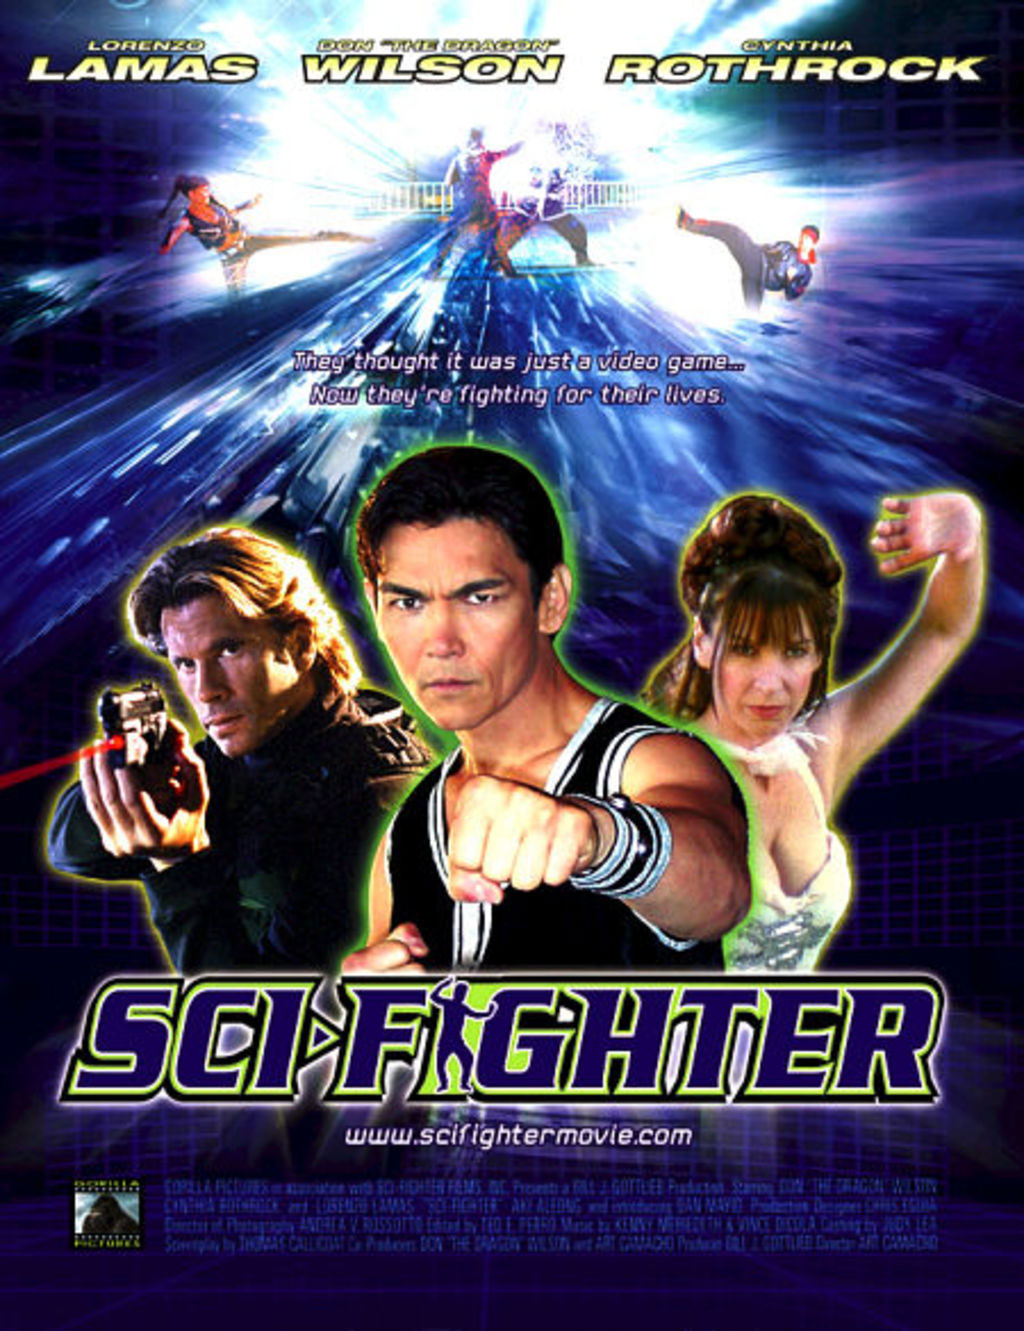 Sci-Fighter movie poster